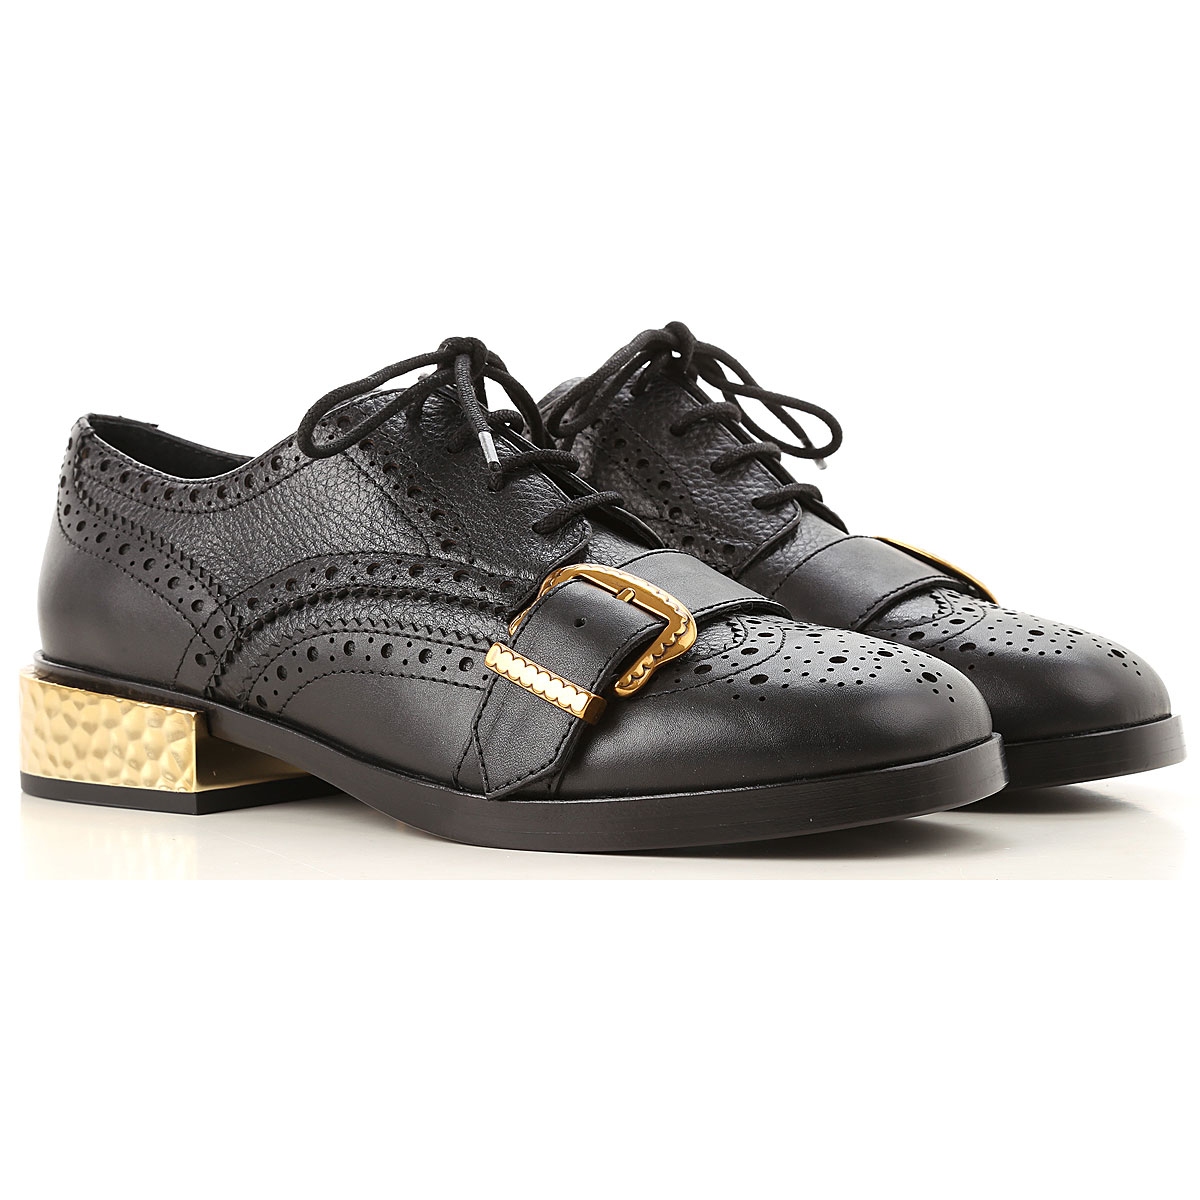 Image of Ash Lace Up Shoes for Men Oxfords, Derbies and Brogues, Black, Leather, 2017, 10 6 7 8 9